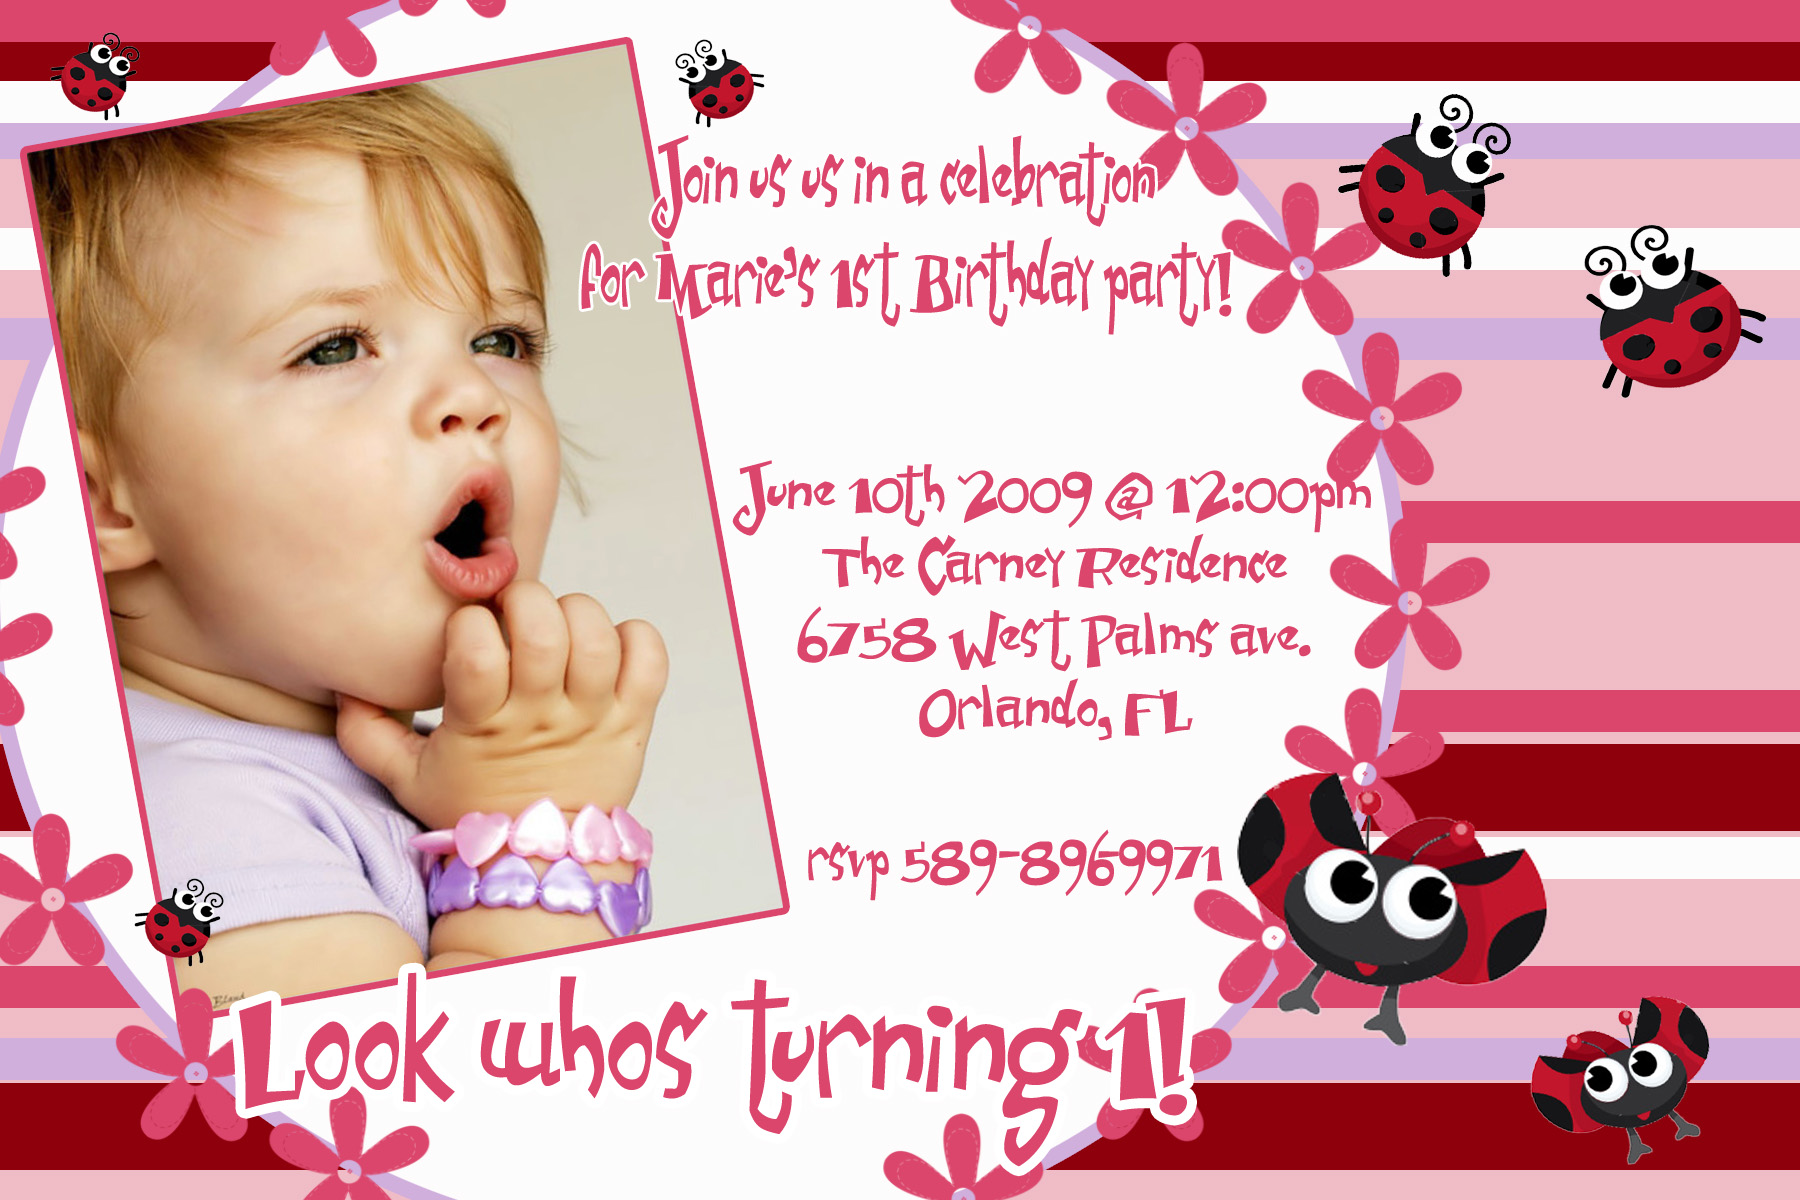 birthday invitation design ; Birthday-Invitation-For-Baby-and-get-ideas-how-to-make-charming-birthday-Invitation-appearance-1